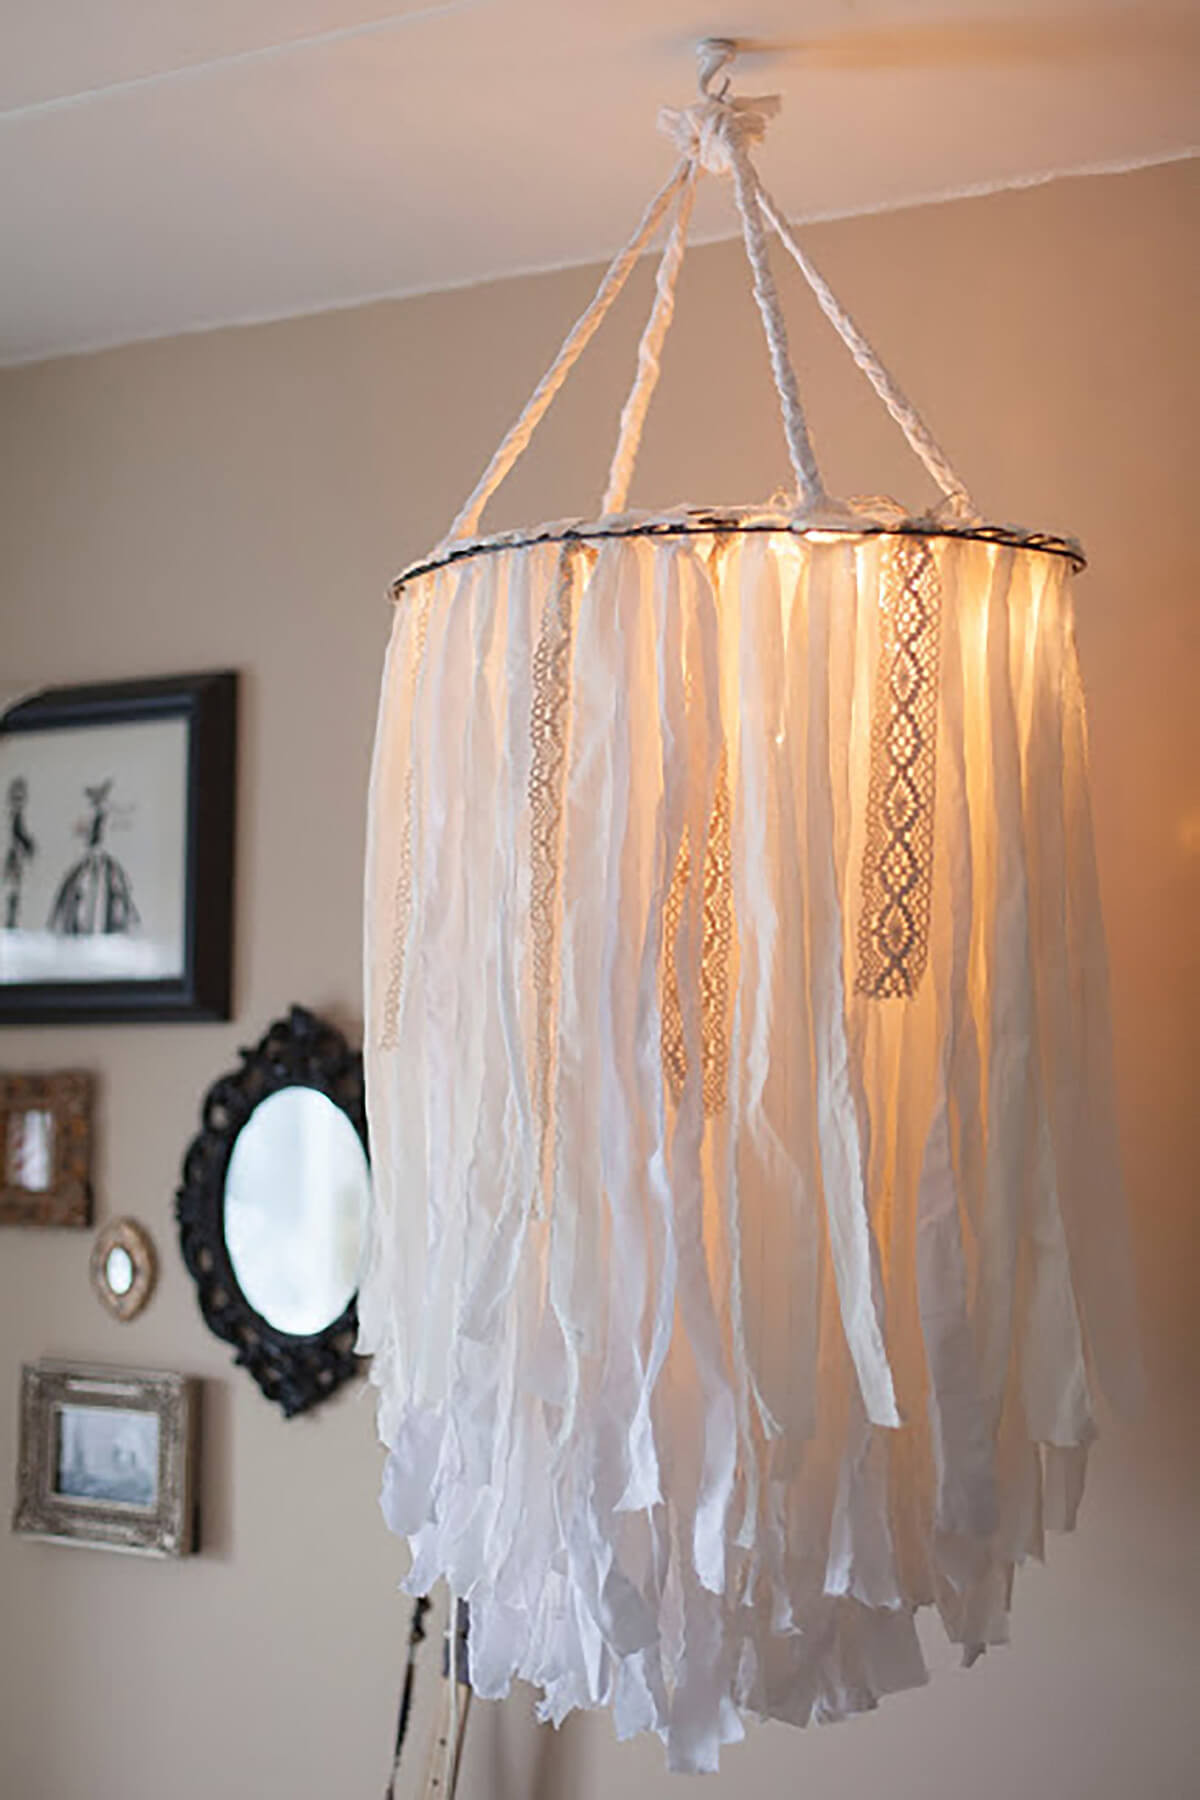 Diy Lampshade  34 Best DIY Lamp and Lamp Shade Ideas and Designs for 2019